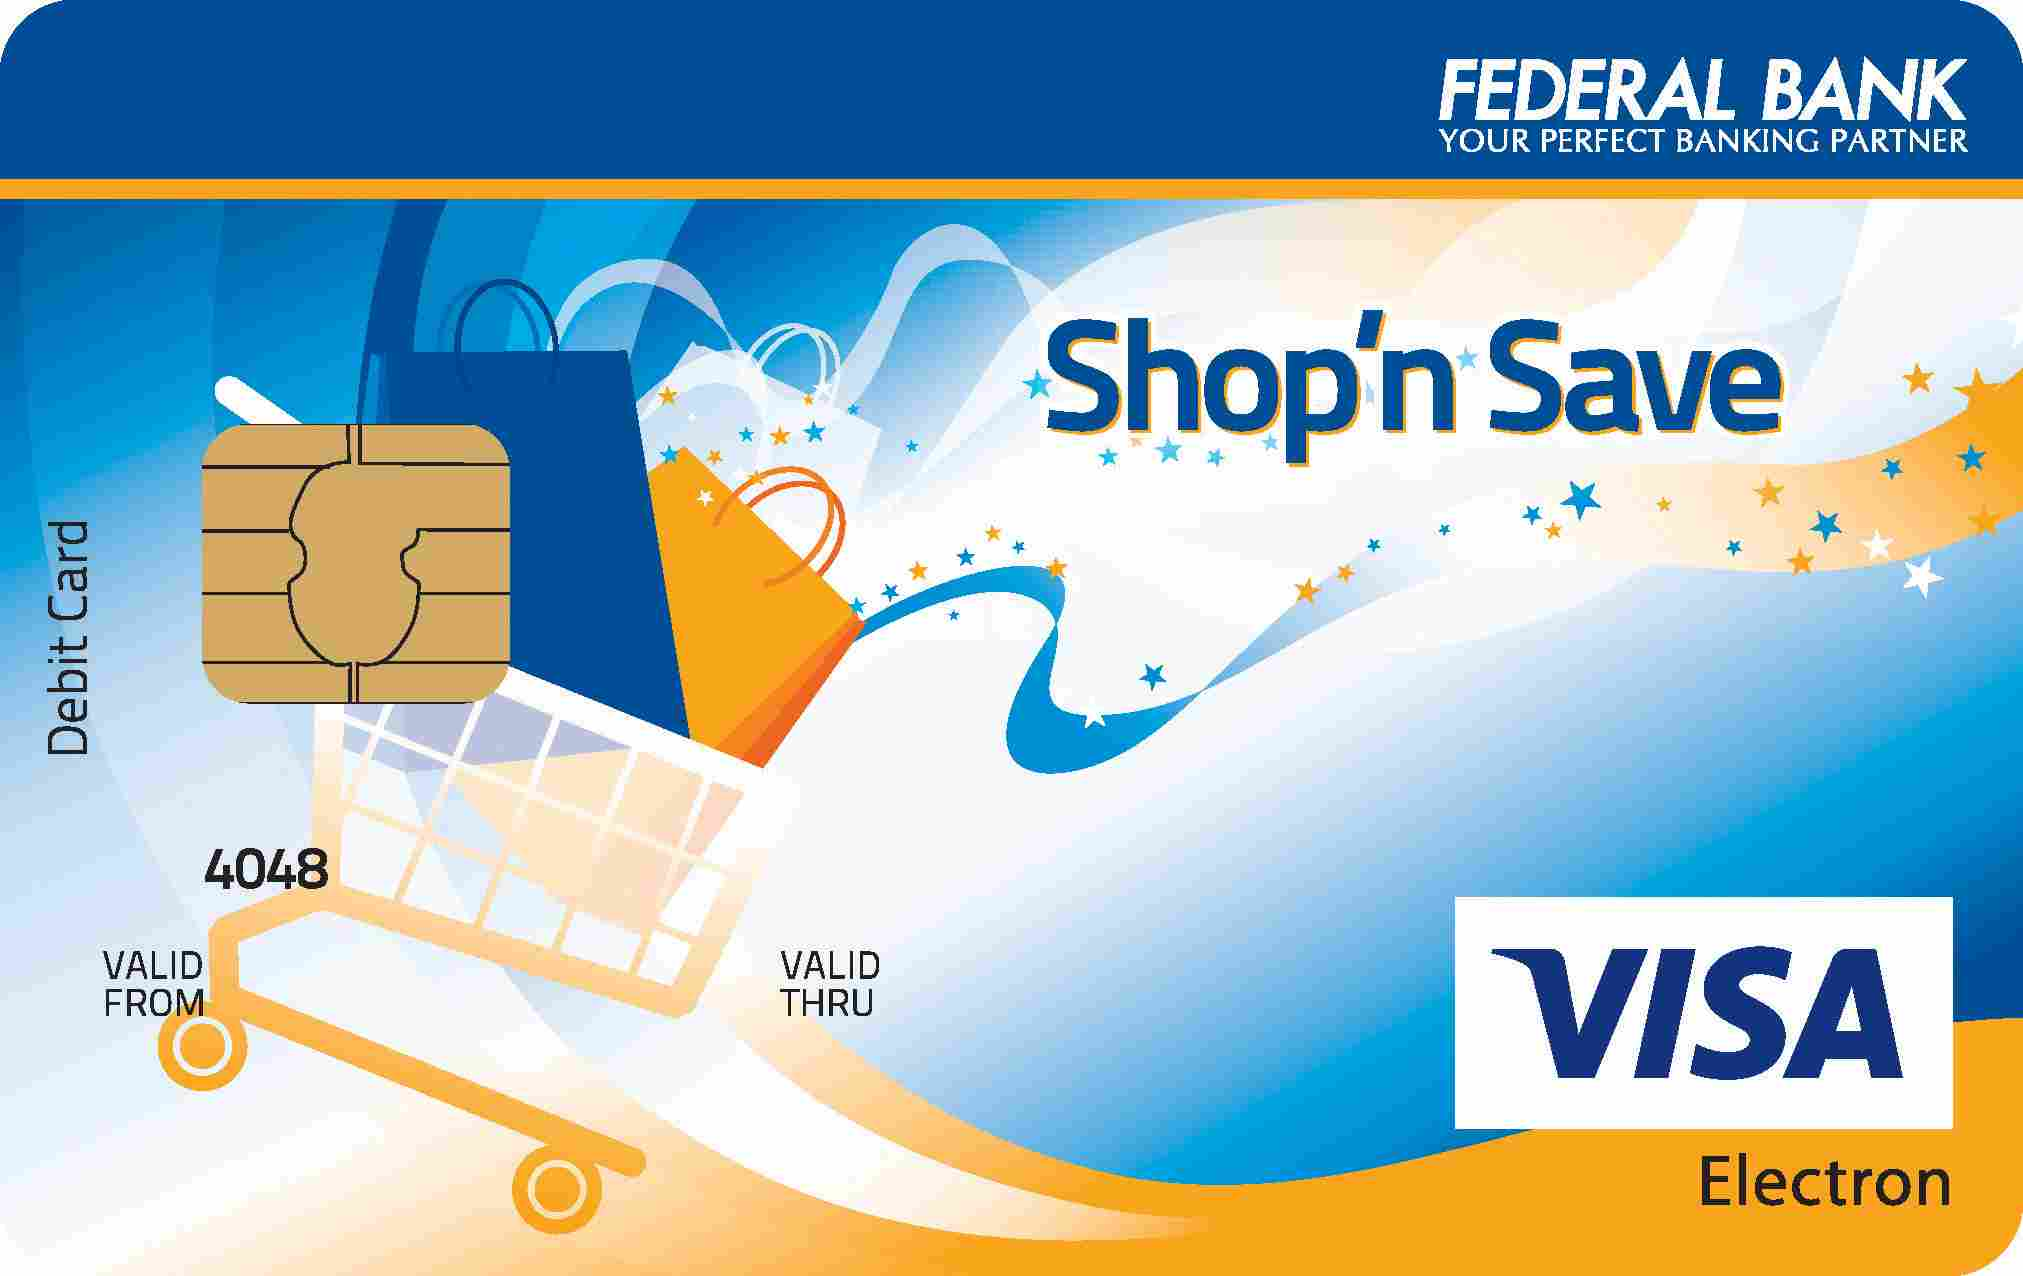 Federal Bank Shop and Save Debit Card